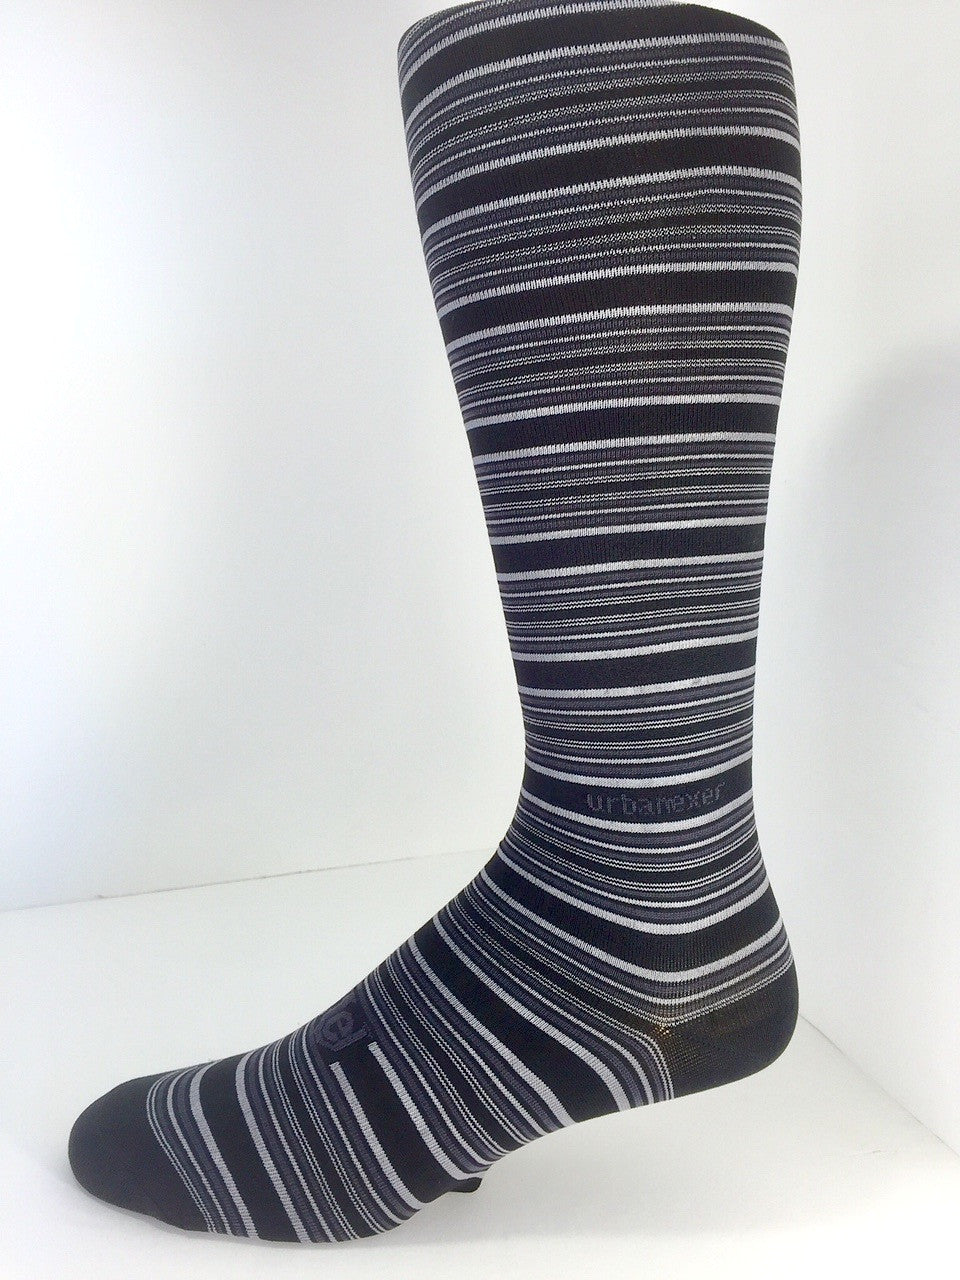 Performance Stripes Men's ThinSkin Socks Black/Charcoal/Gray